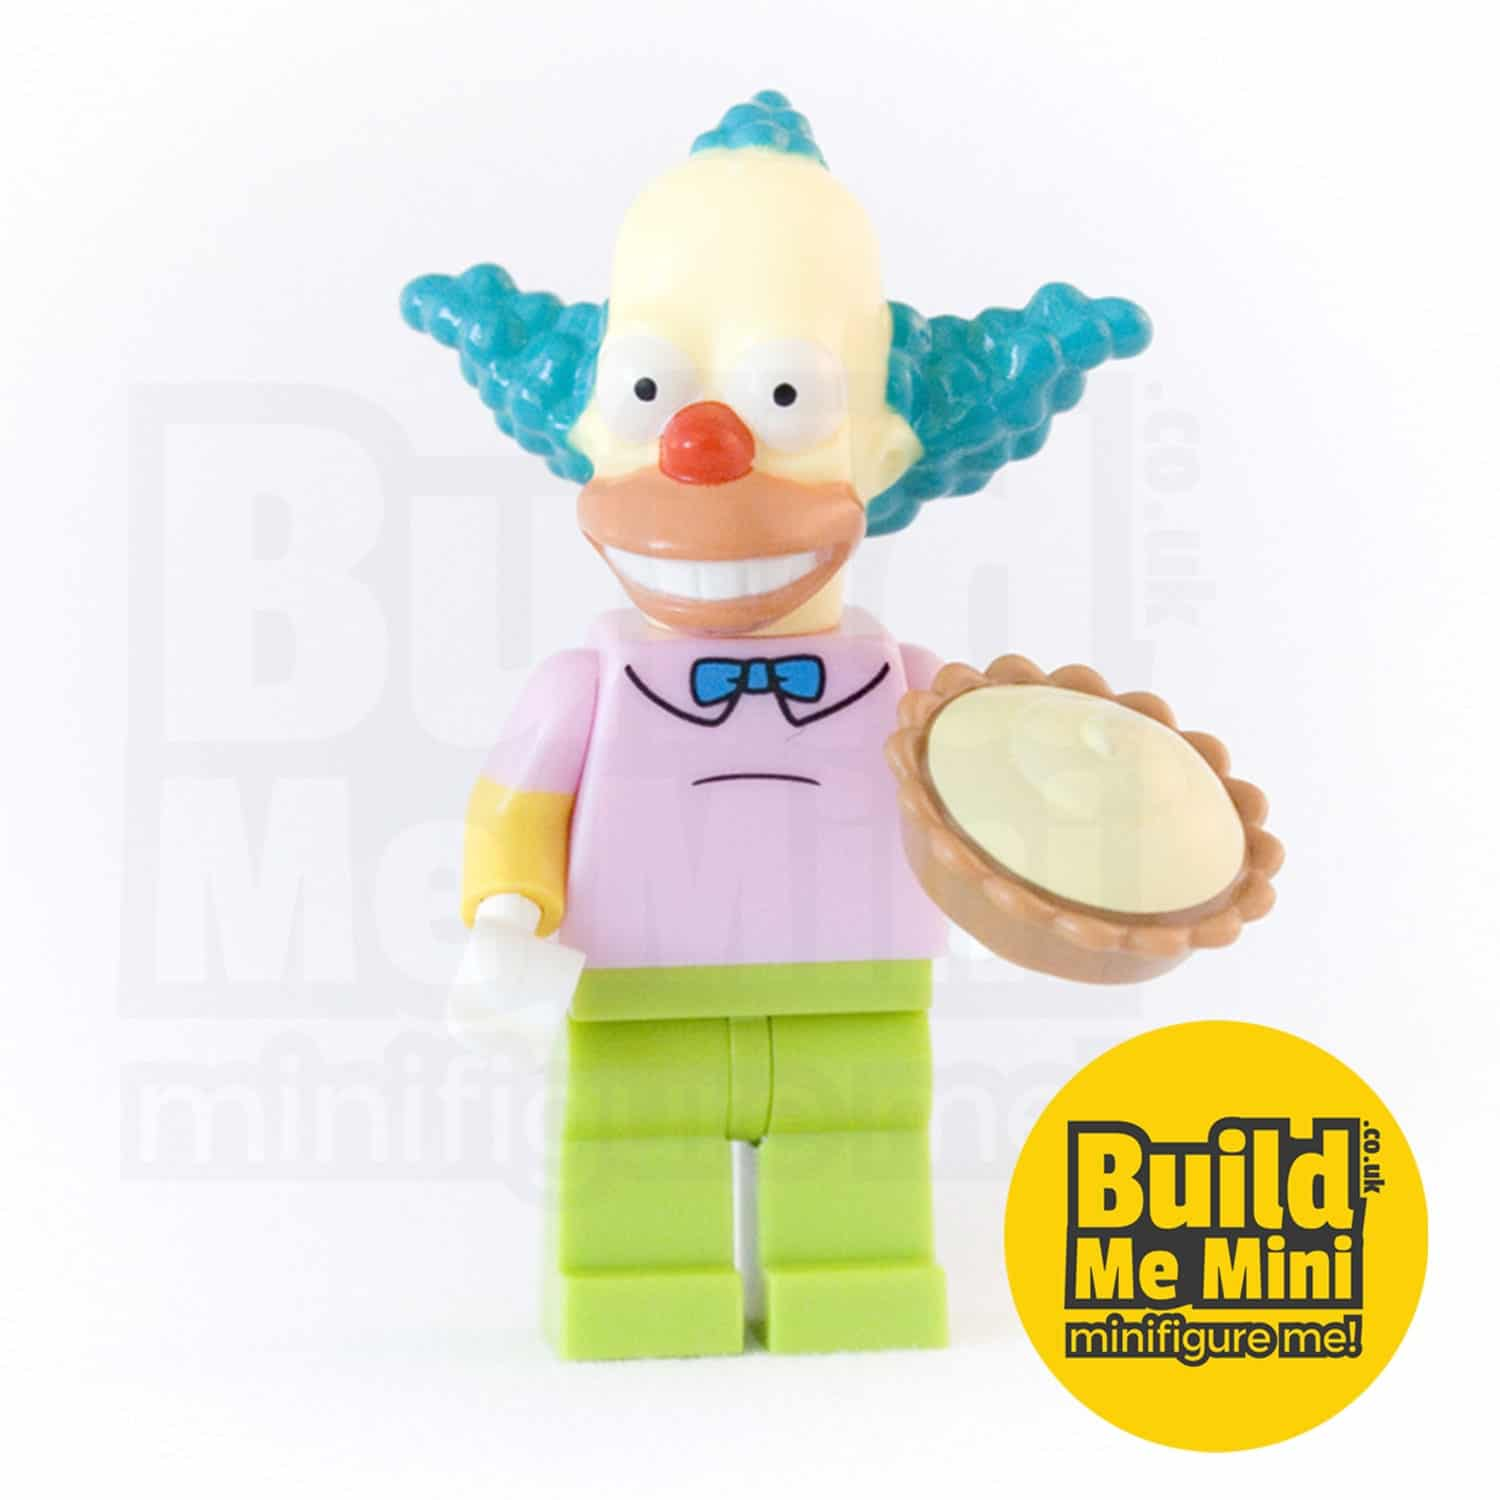 LEGO Simpsons Krusty the Clown Minifigure